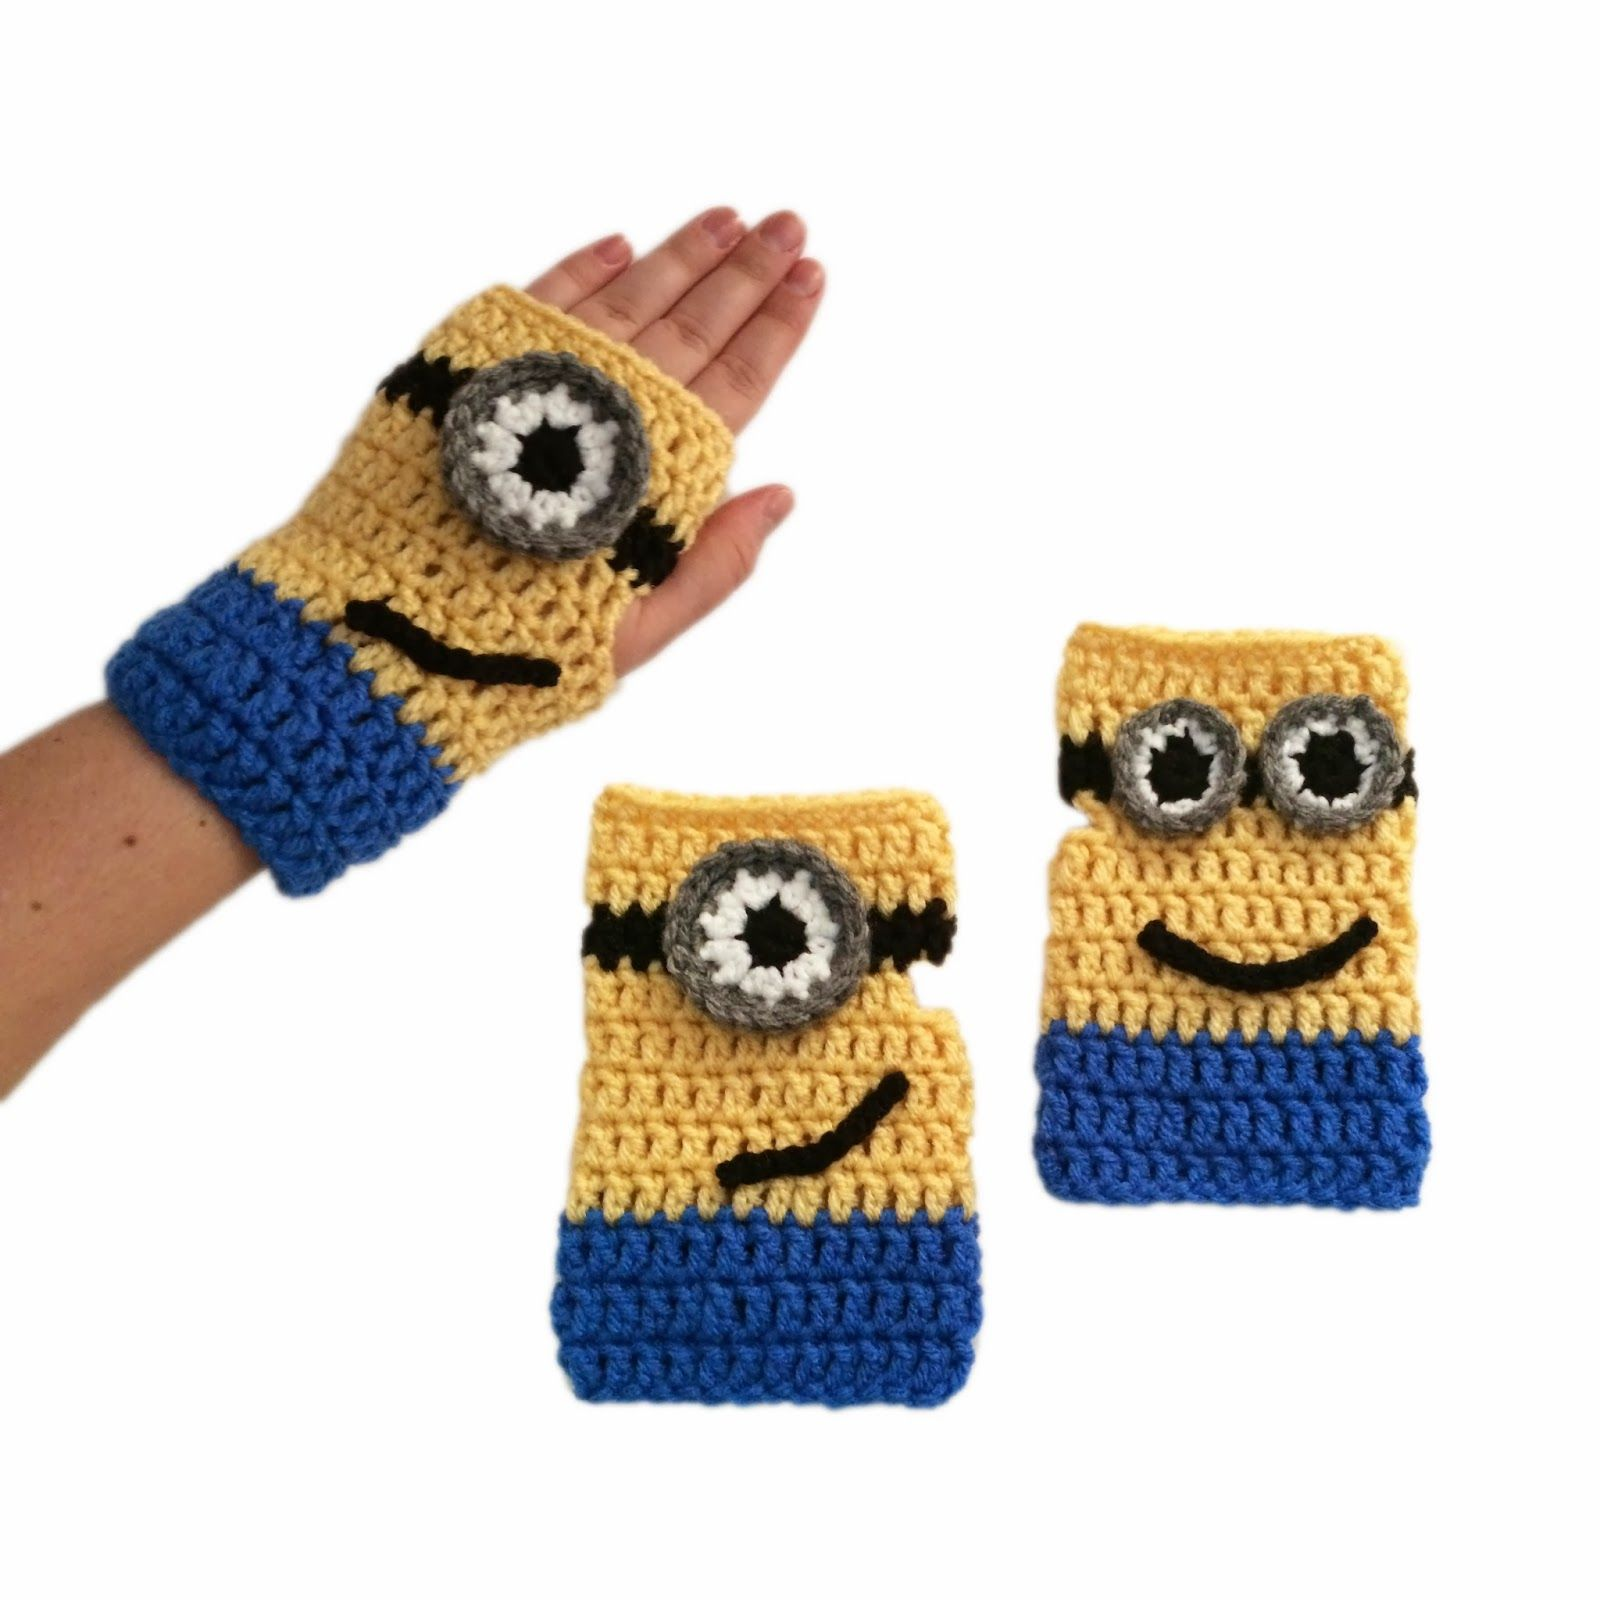 Tampa Bay Crochet: Free Crochet Pattern: Minion Mitts | minion glove ...